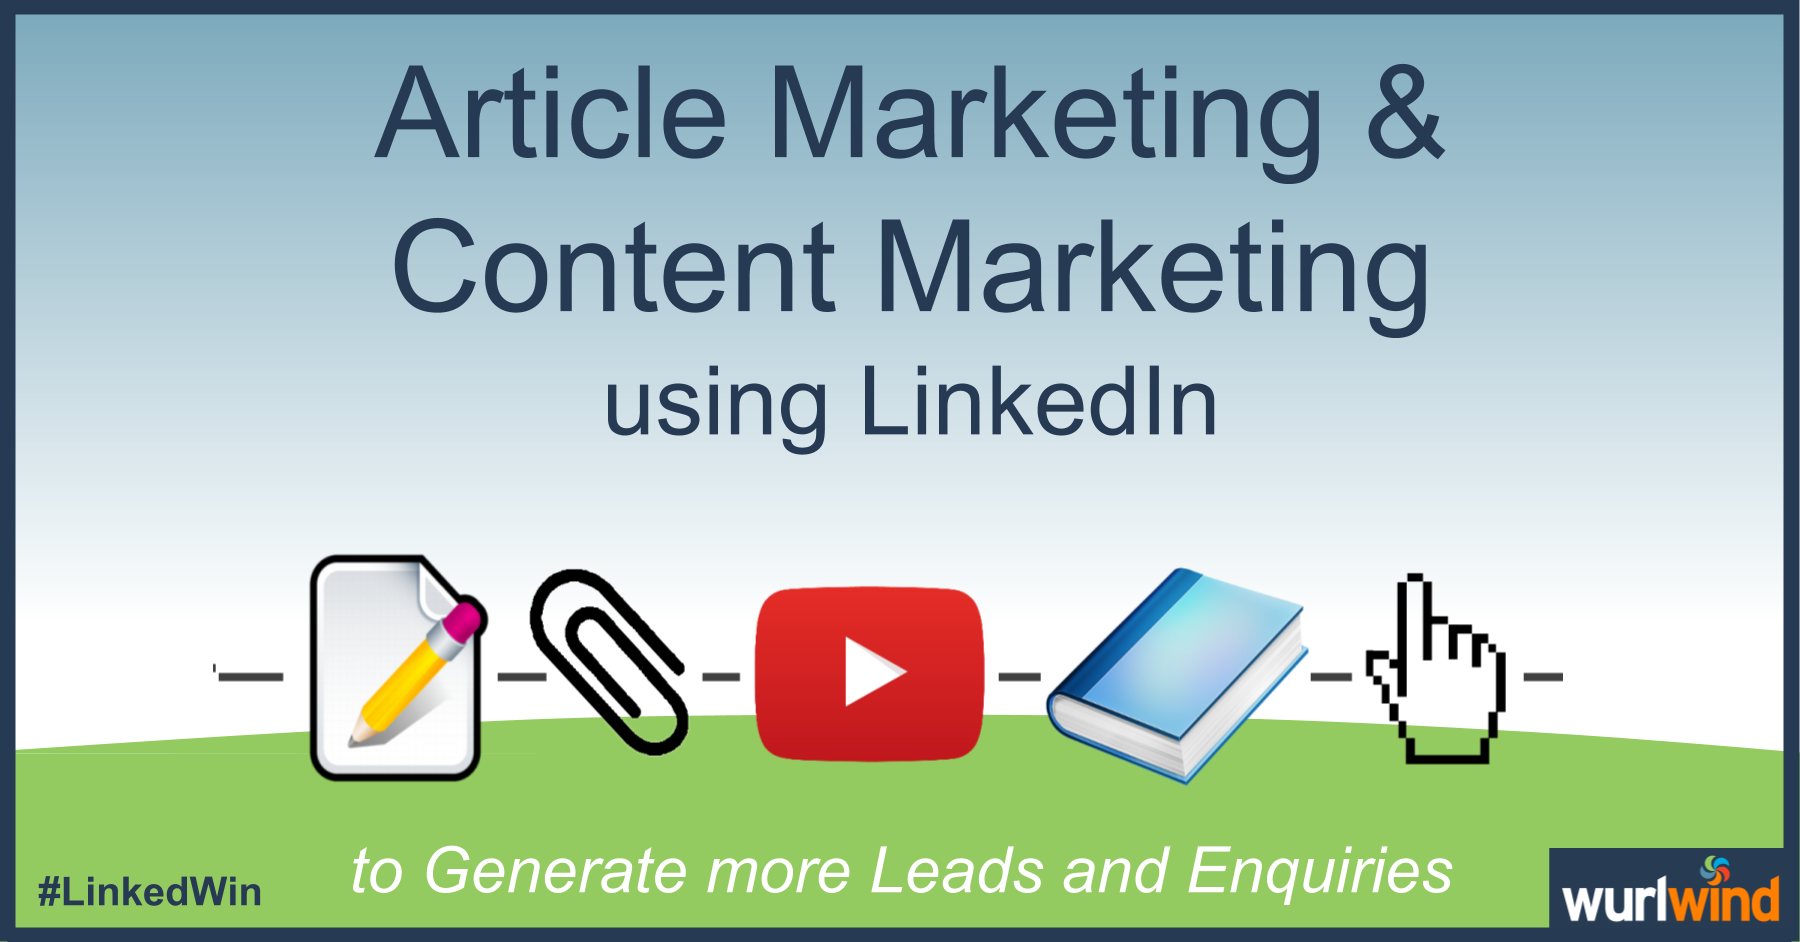 LinkedIn Lead Generation Article Marketing Image Mark Stonham Wurlwind